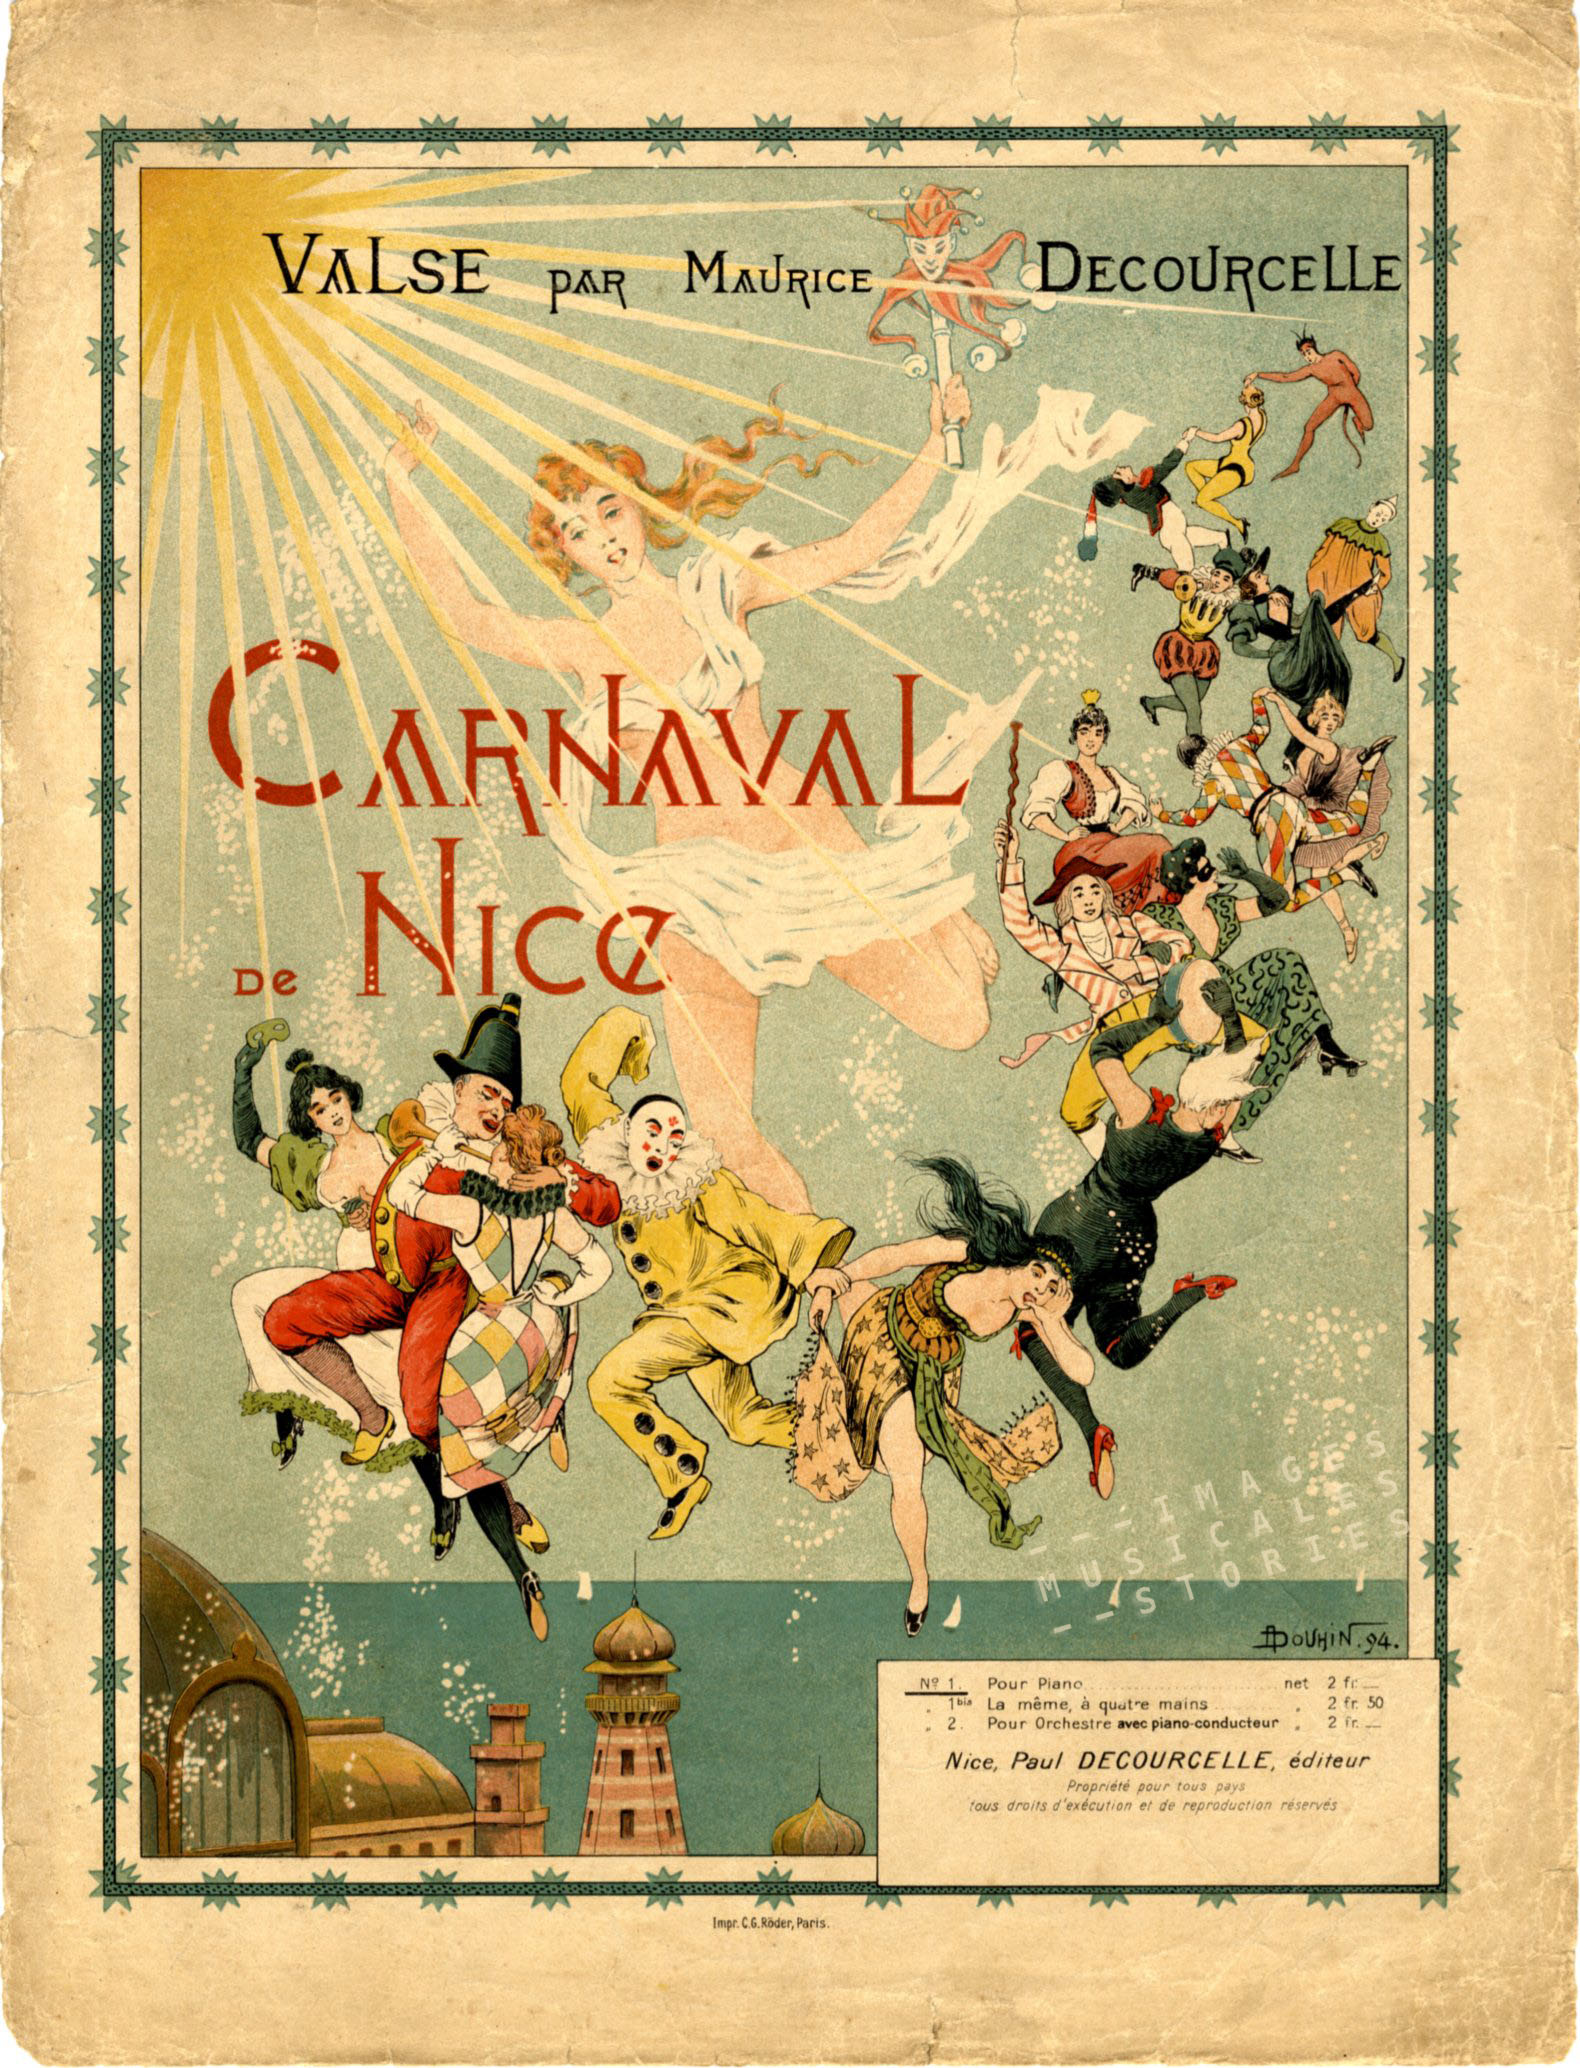 Sheet music for the Carnaval de Nice, Illustrated by Douhin in 1894.